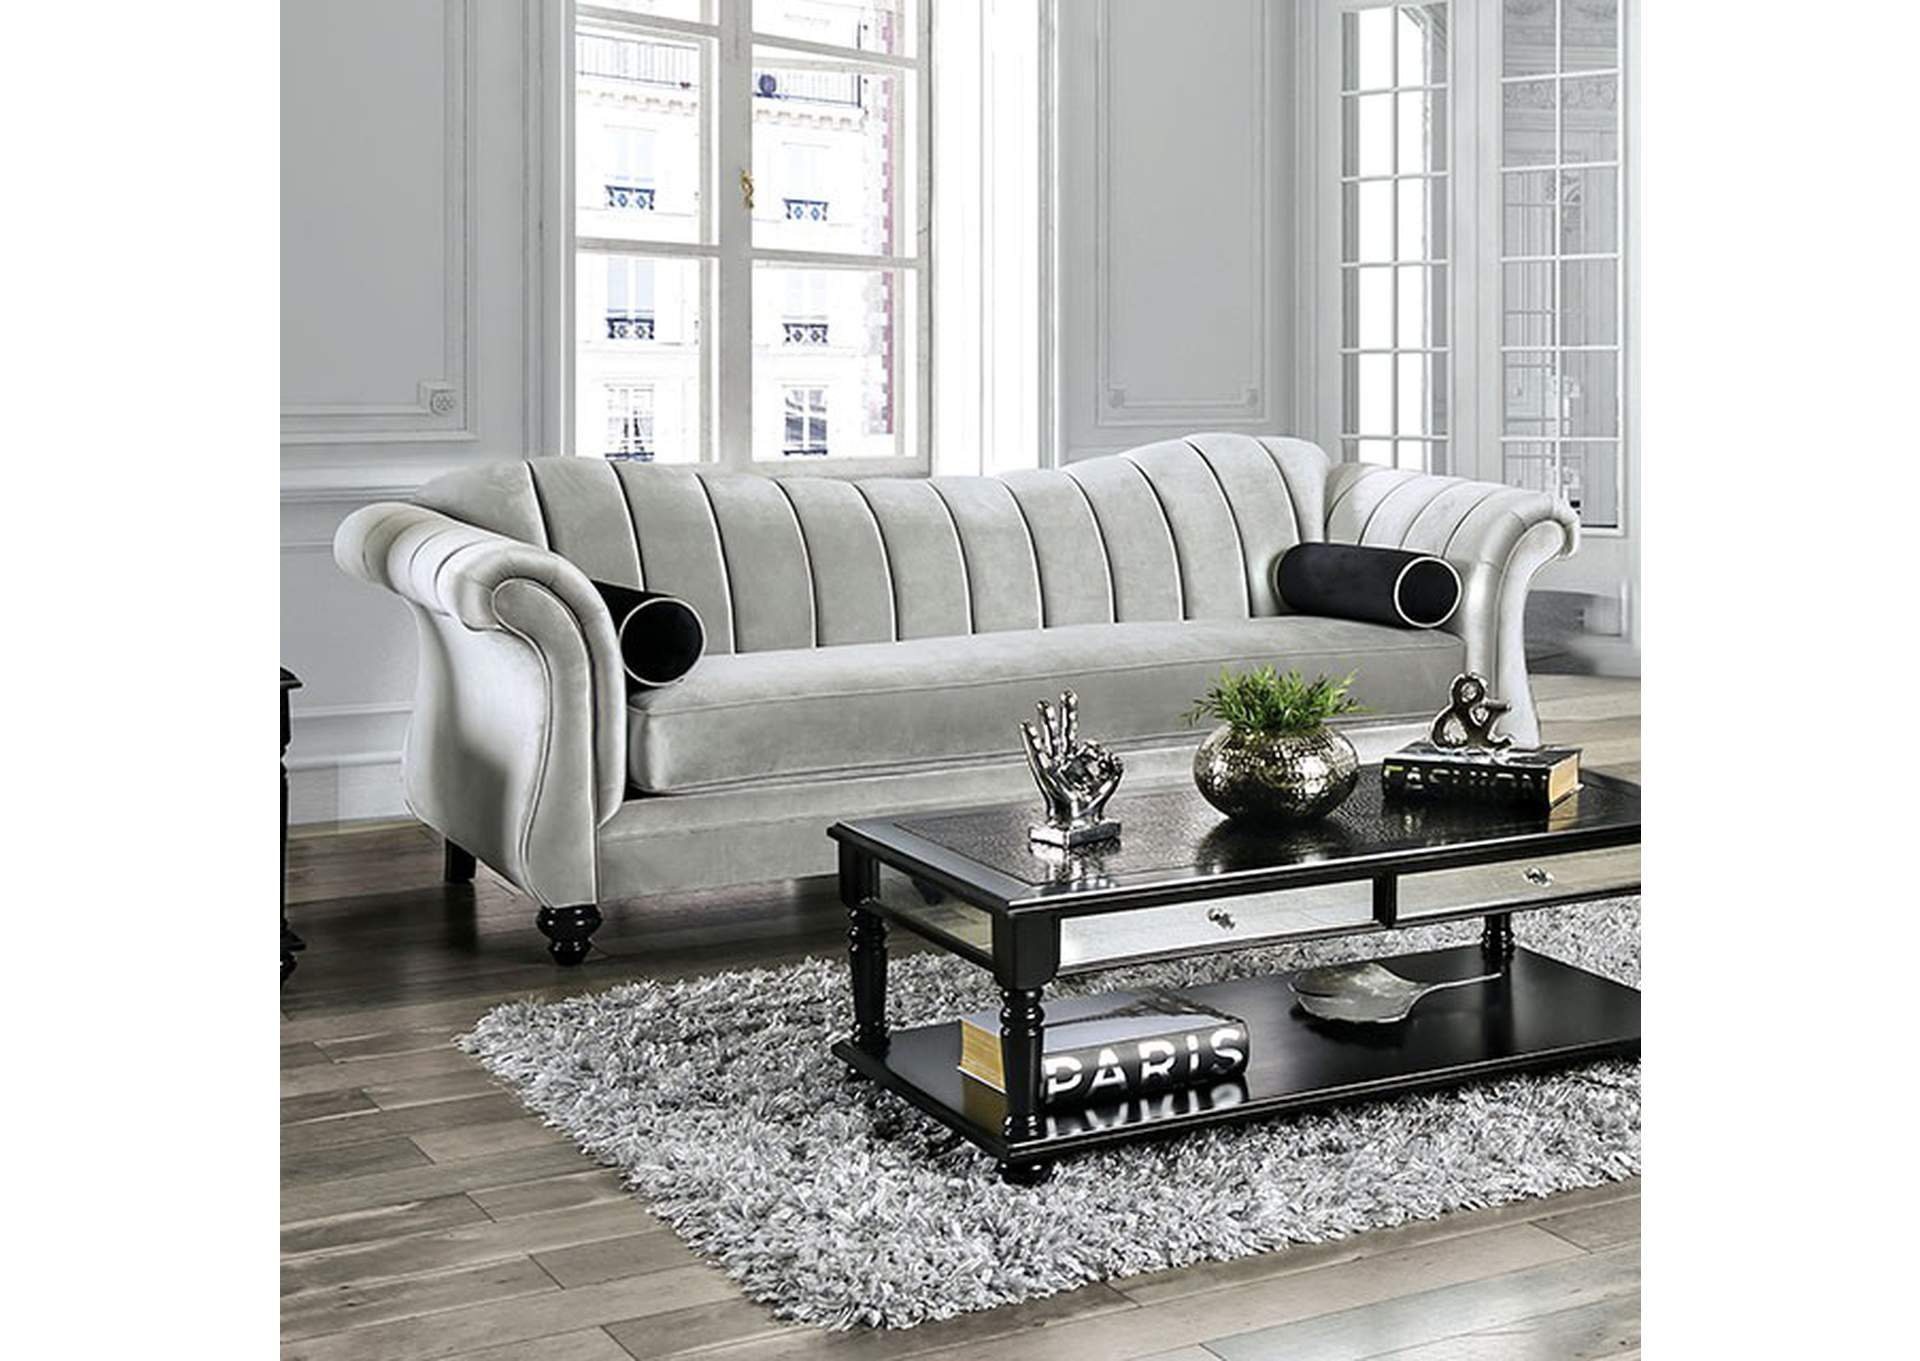 Marvin Gray Stationary Sofa,Furniture of America